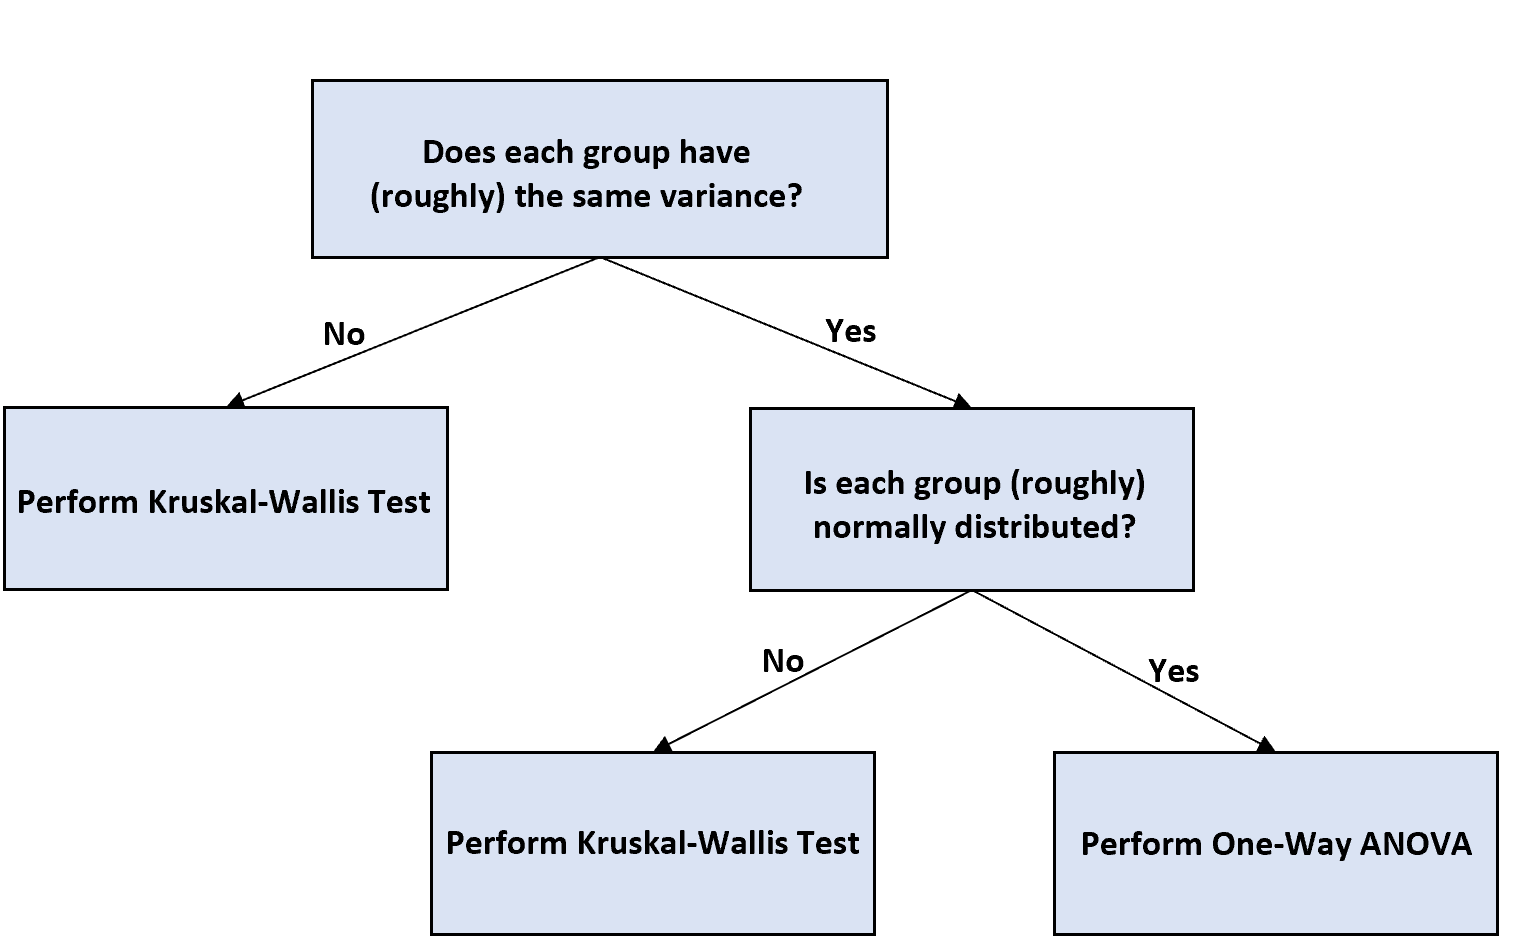 Flow chart for deciding to use one-way ANOVA with unequal sample sizes